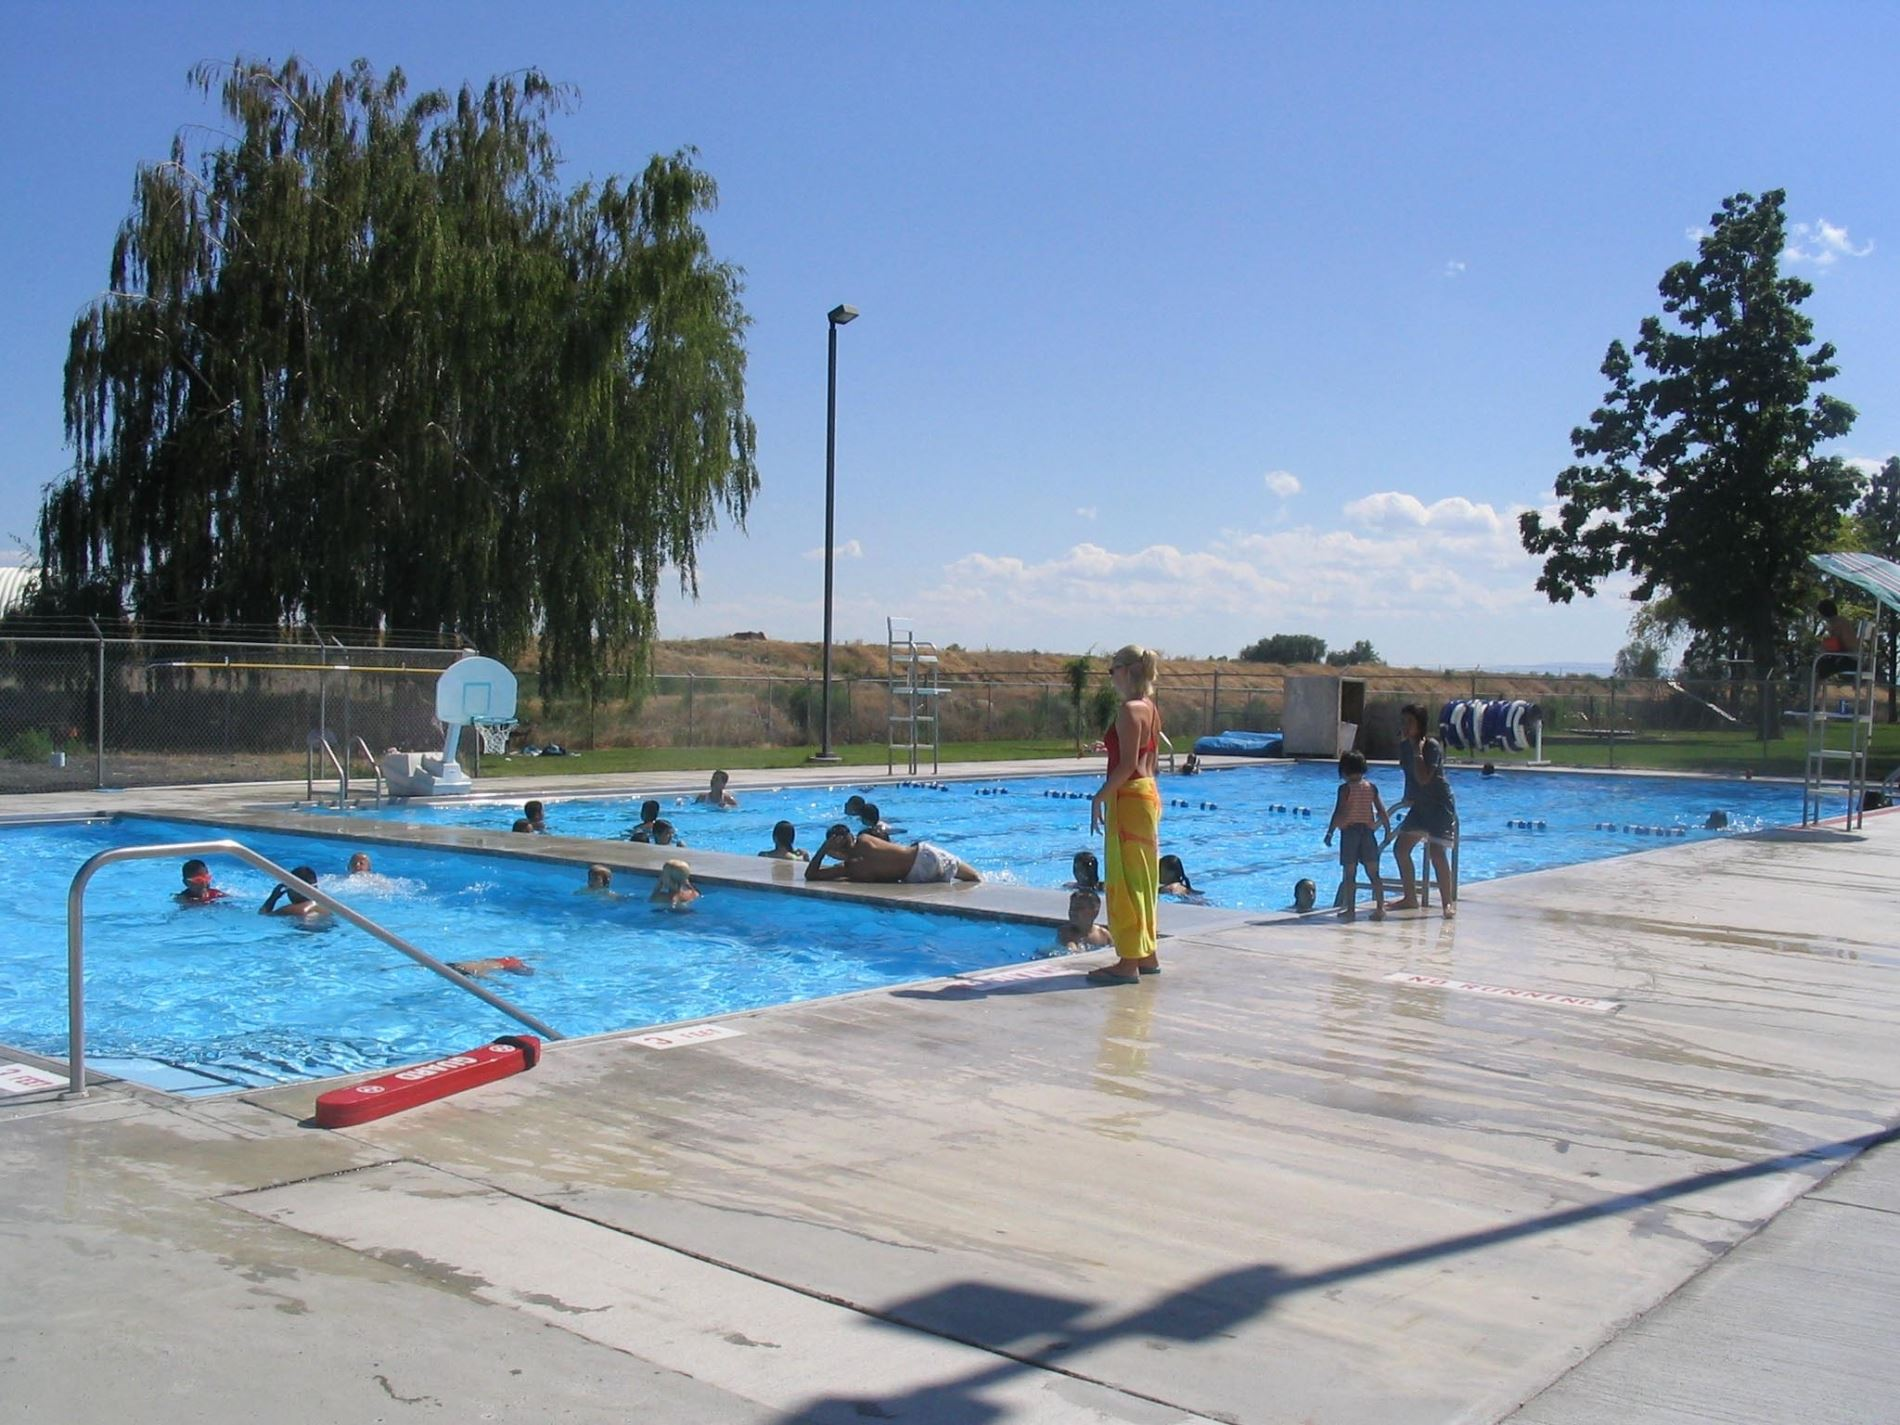 Divided pool with children playing in it